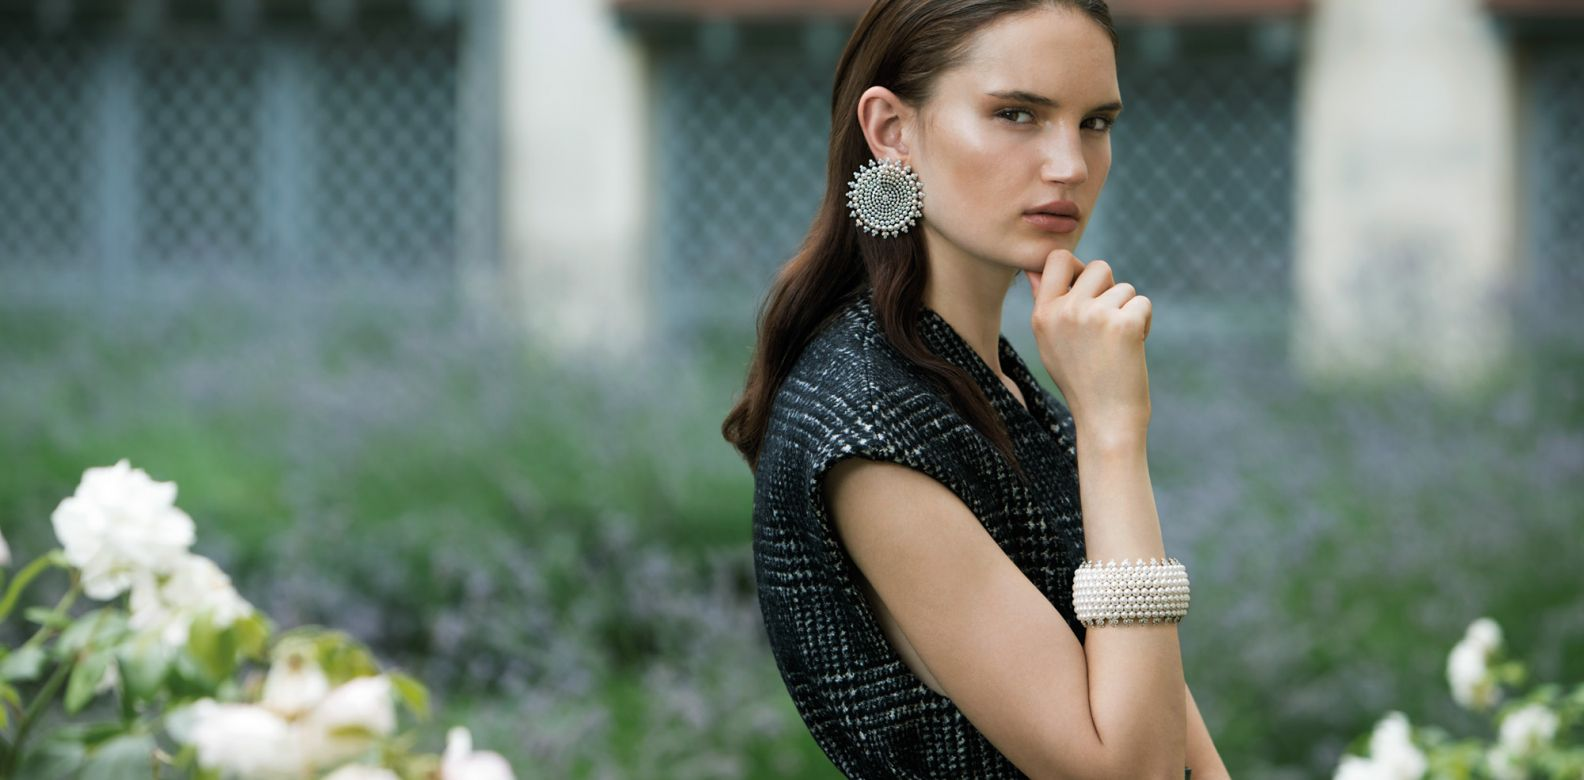 Nuit Étoilée earrings and bracelet in white gold set with diamonds and pearls, both by Boucheron; jacket, skirt and belt by Michael Kors Collection